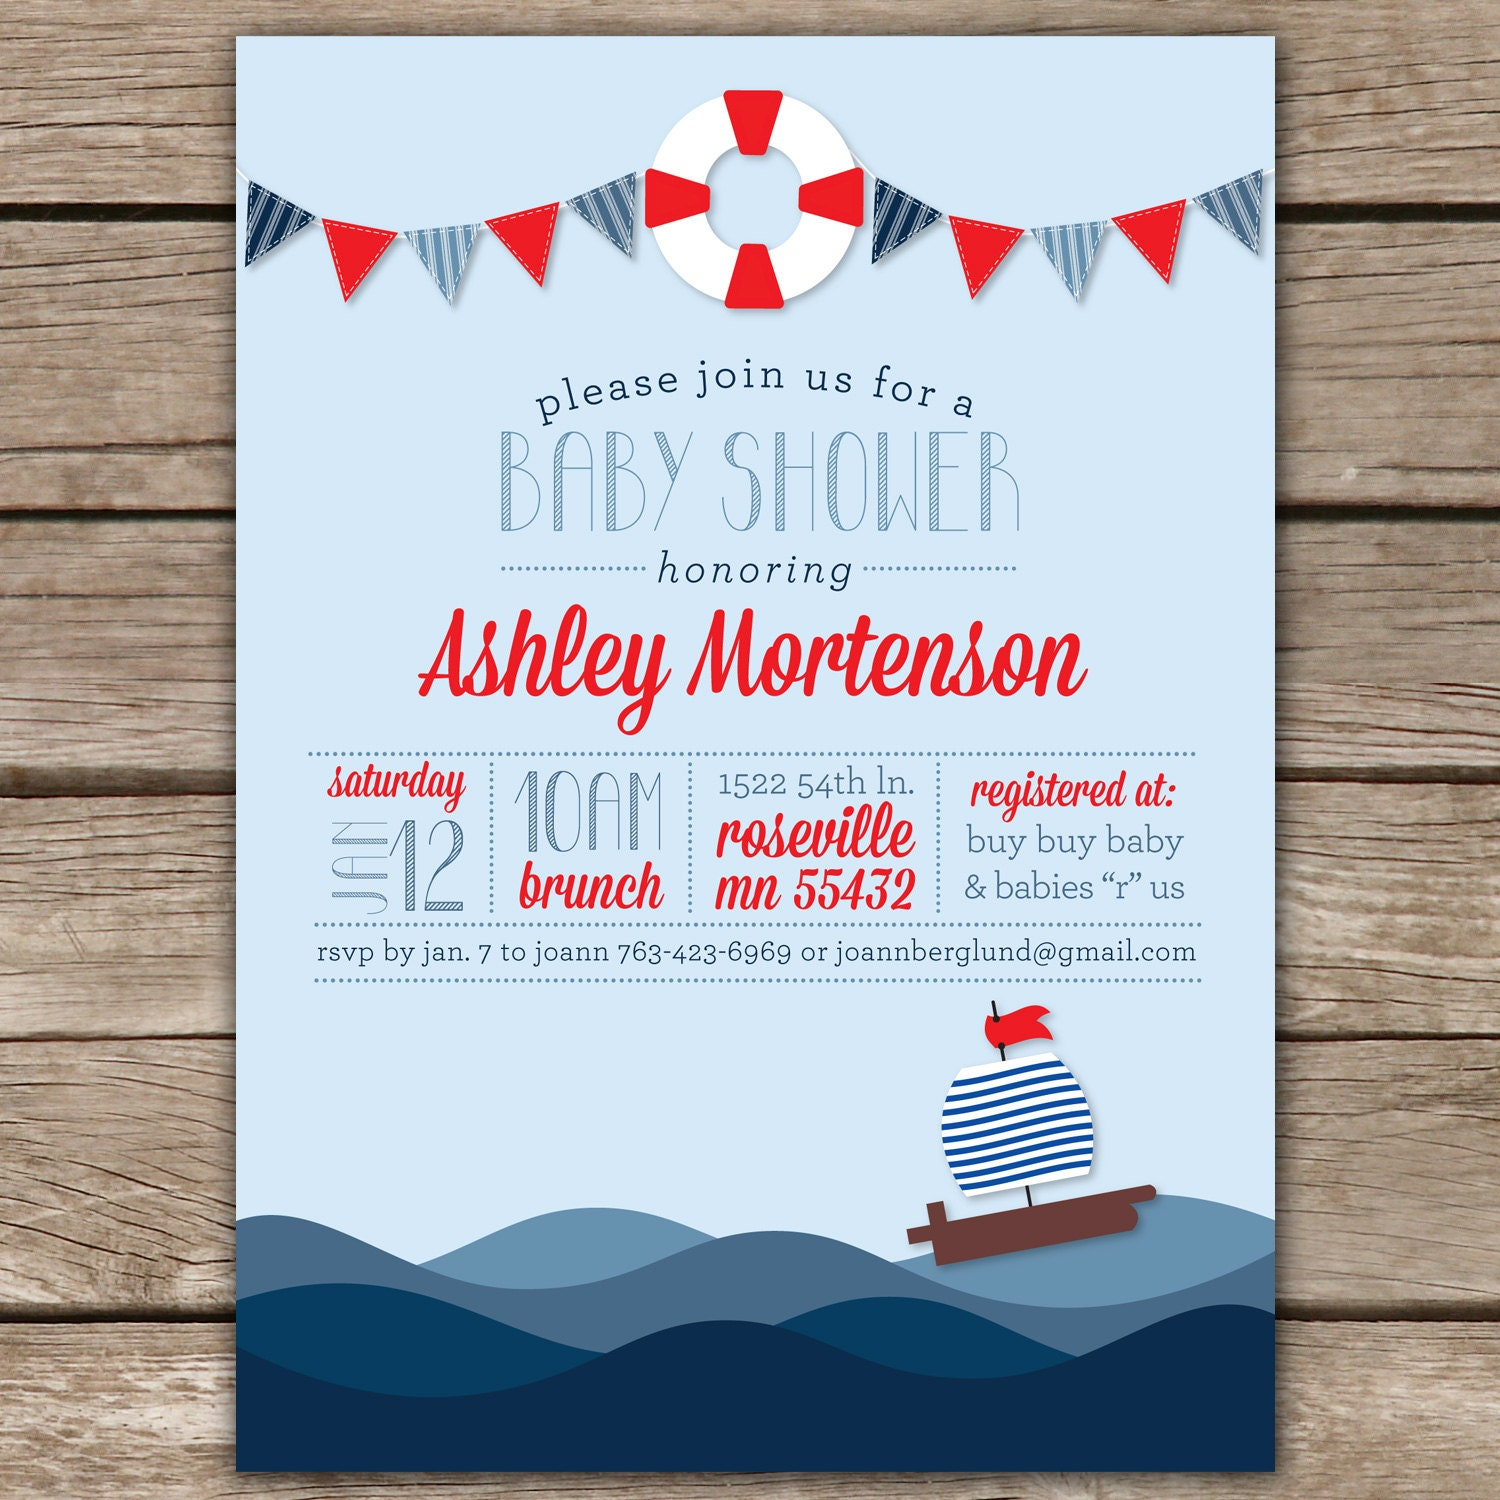 Whale Invitations is Great Sample To Create Inspirational Invitation Design